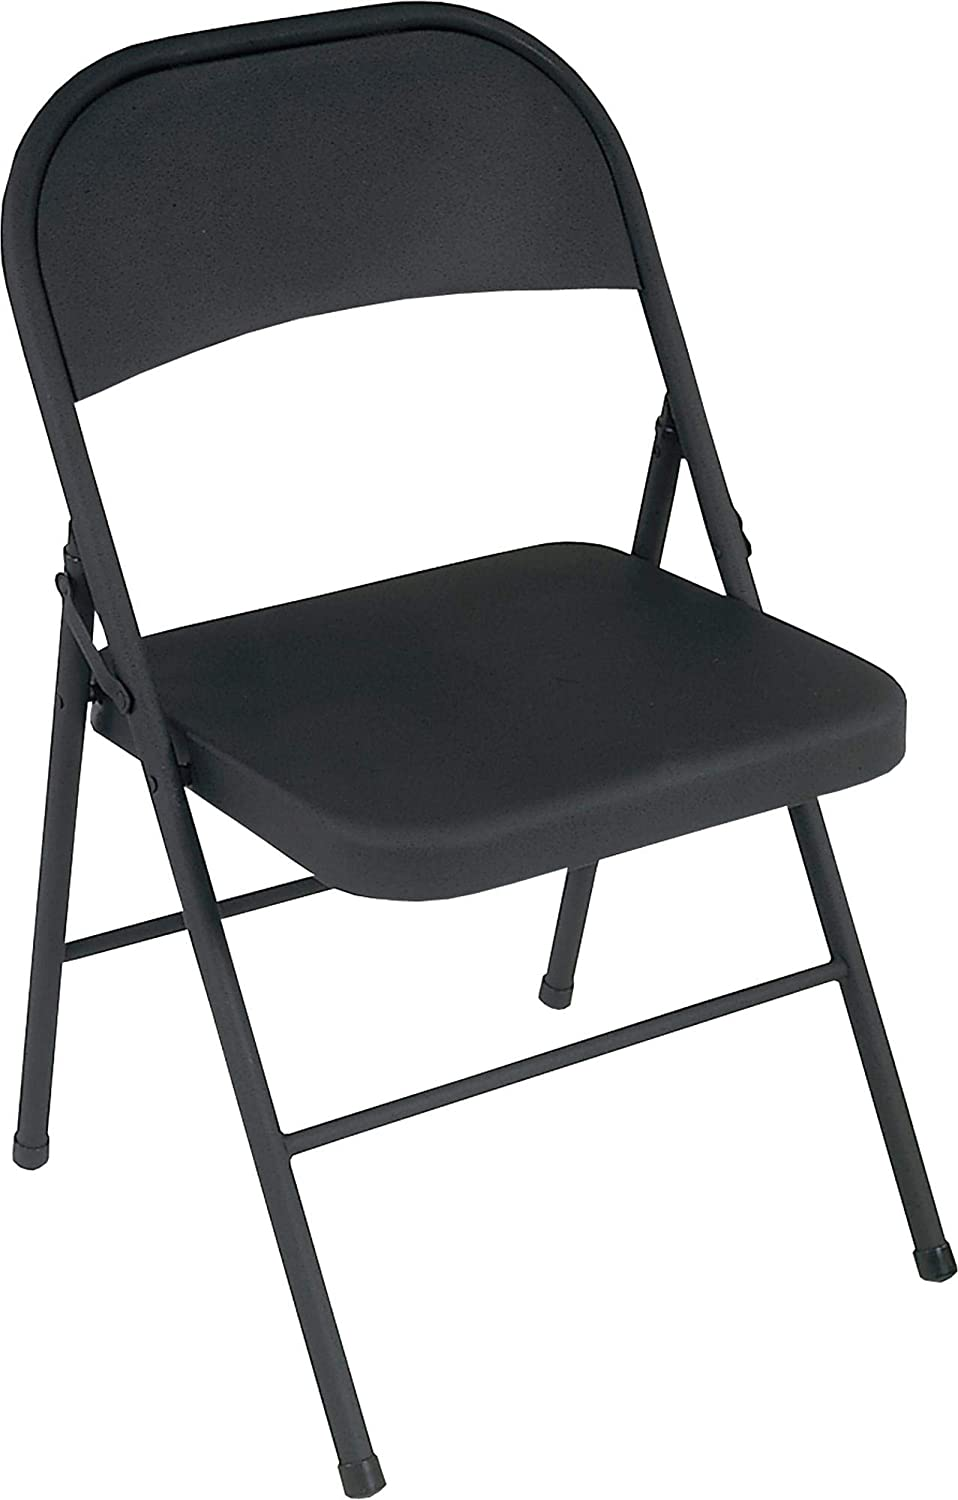 Cosco All Steel Folding Chair Black (4-pack) -: Furniture & Decor